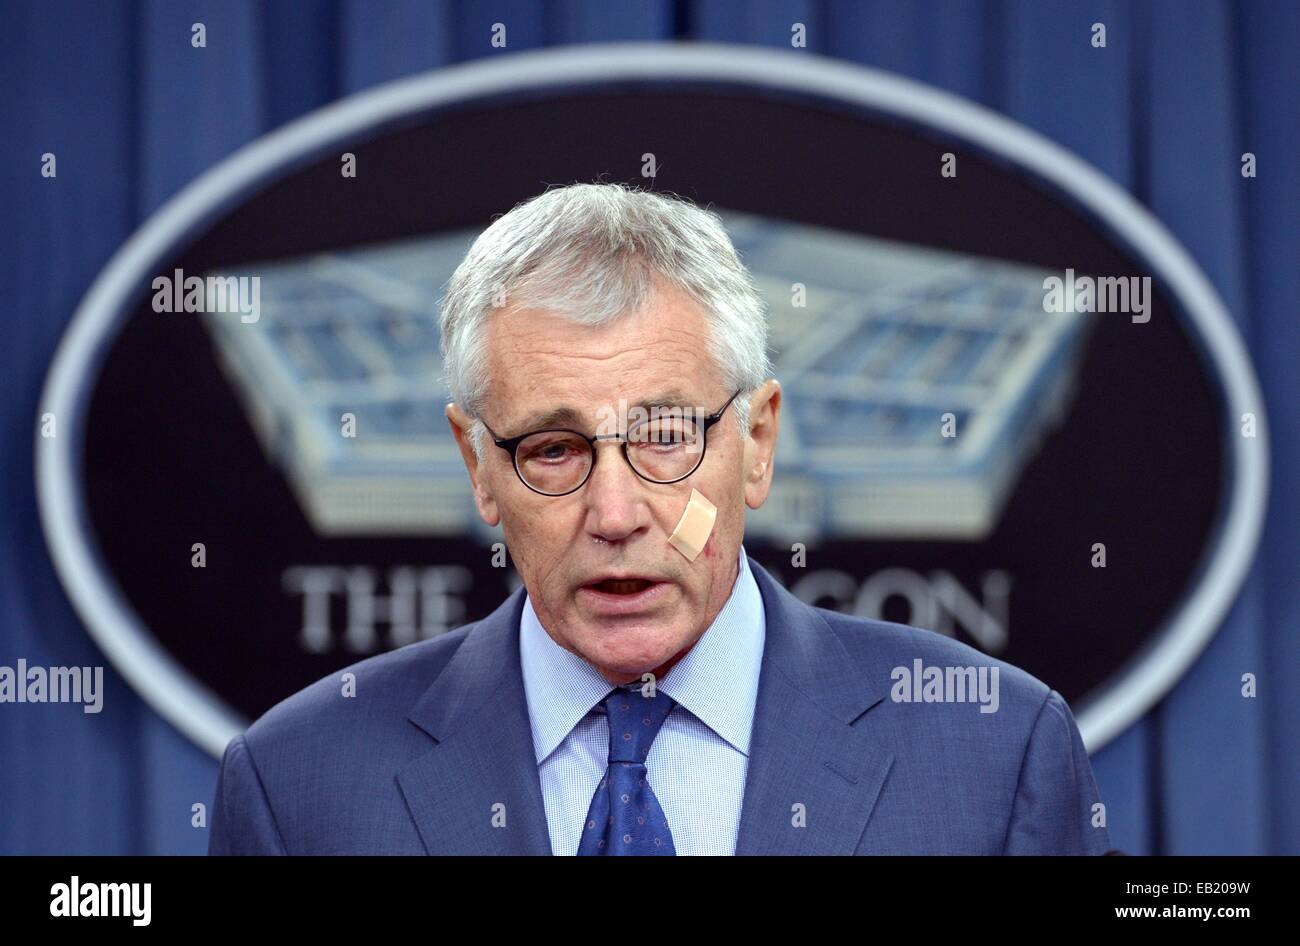 File photo taken on Nov. 14, 2014 shows US Defense Secretary Chuck Hagel speaks at a news briefing at the Pentagon - Stock Image